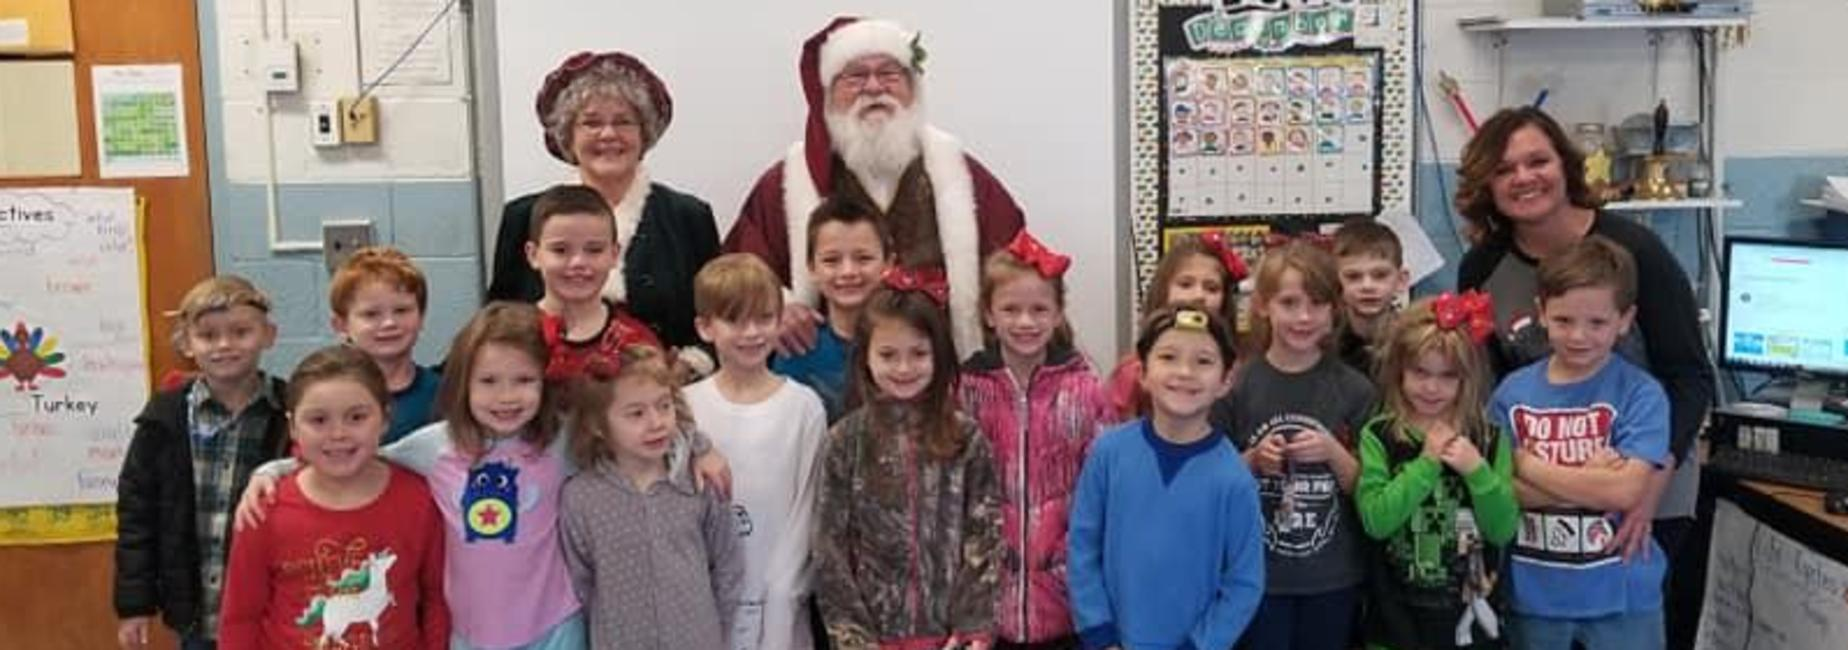 Class Photo with Santa